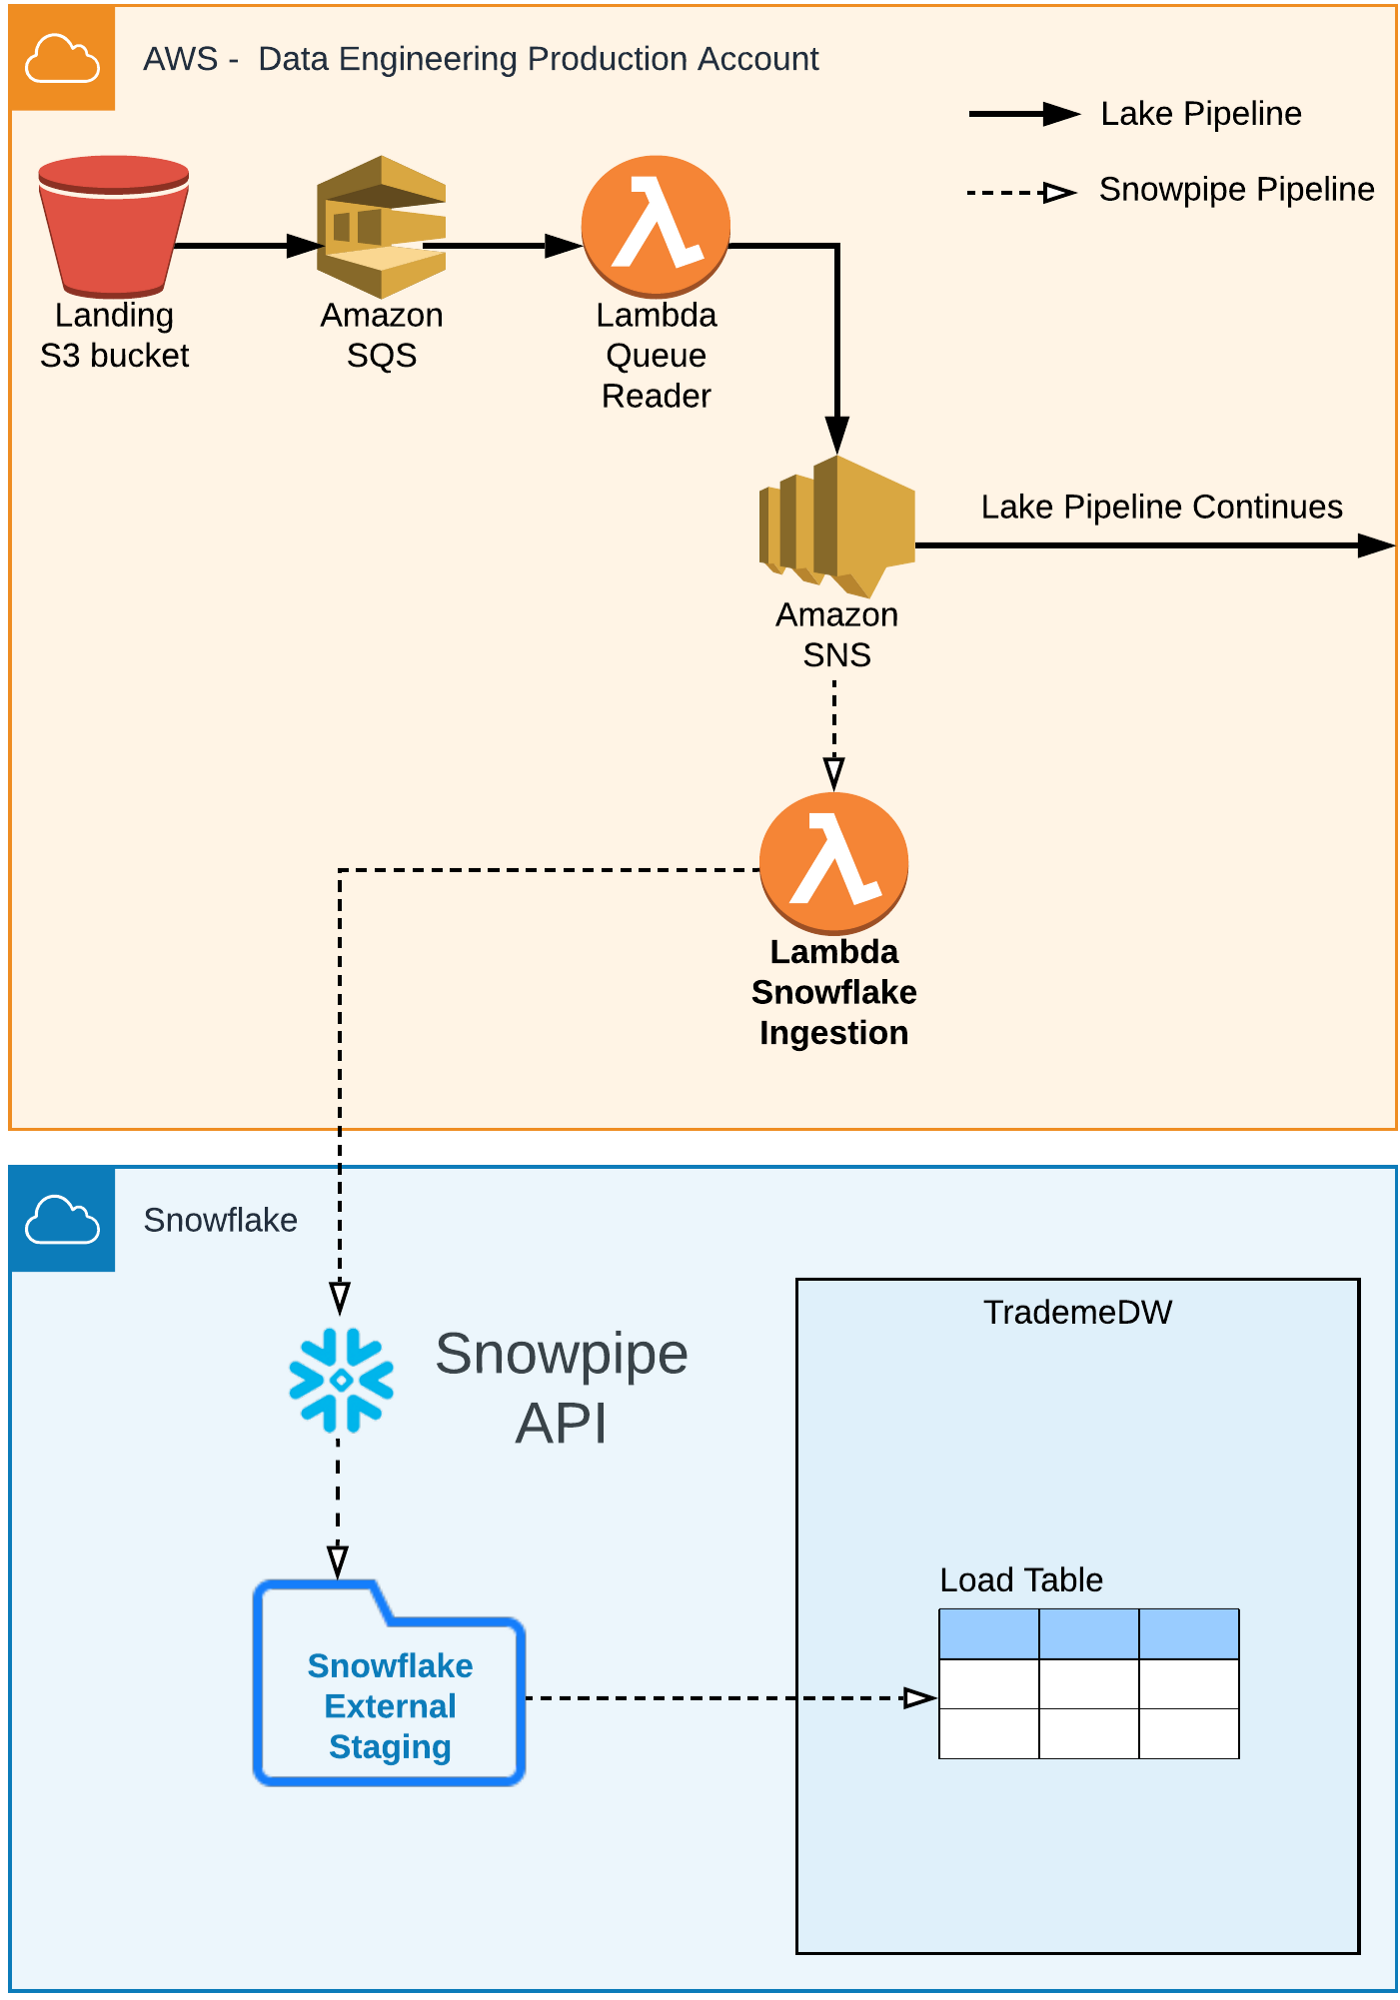 Snowflake: the details of our first Data Warehousing project in the